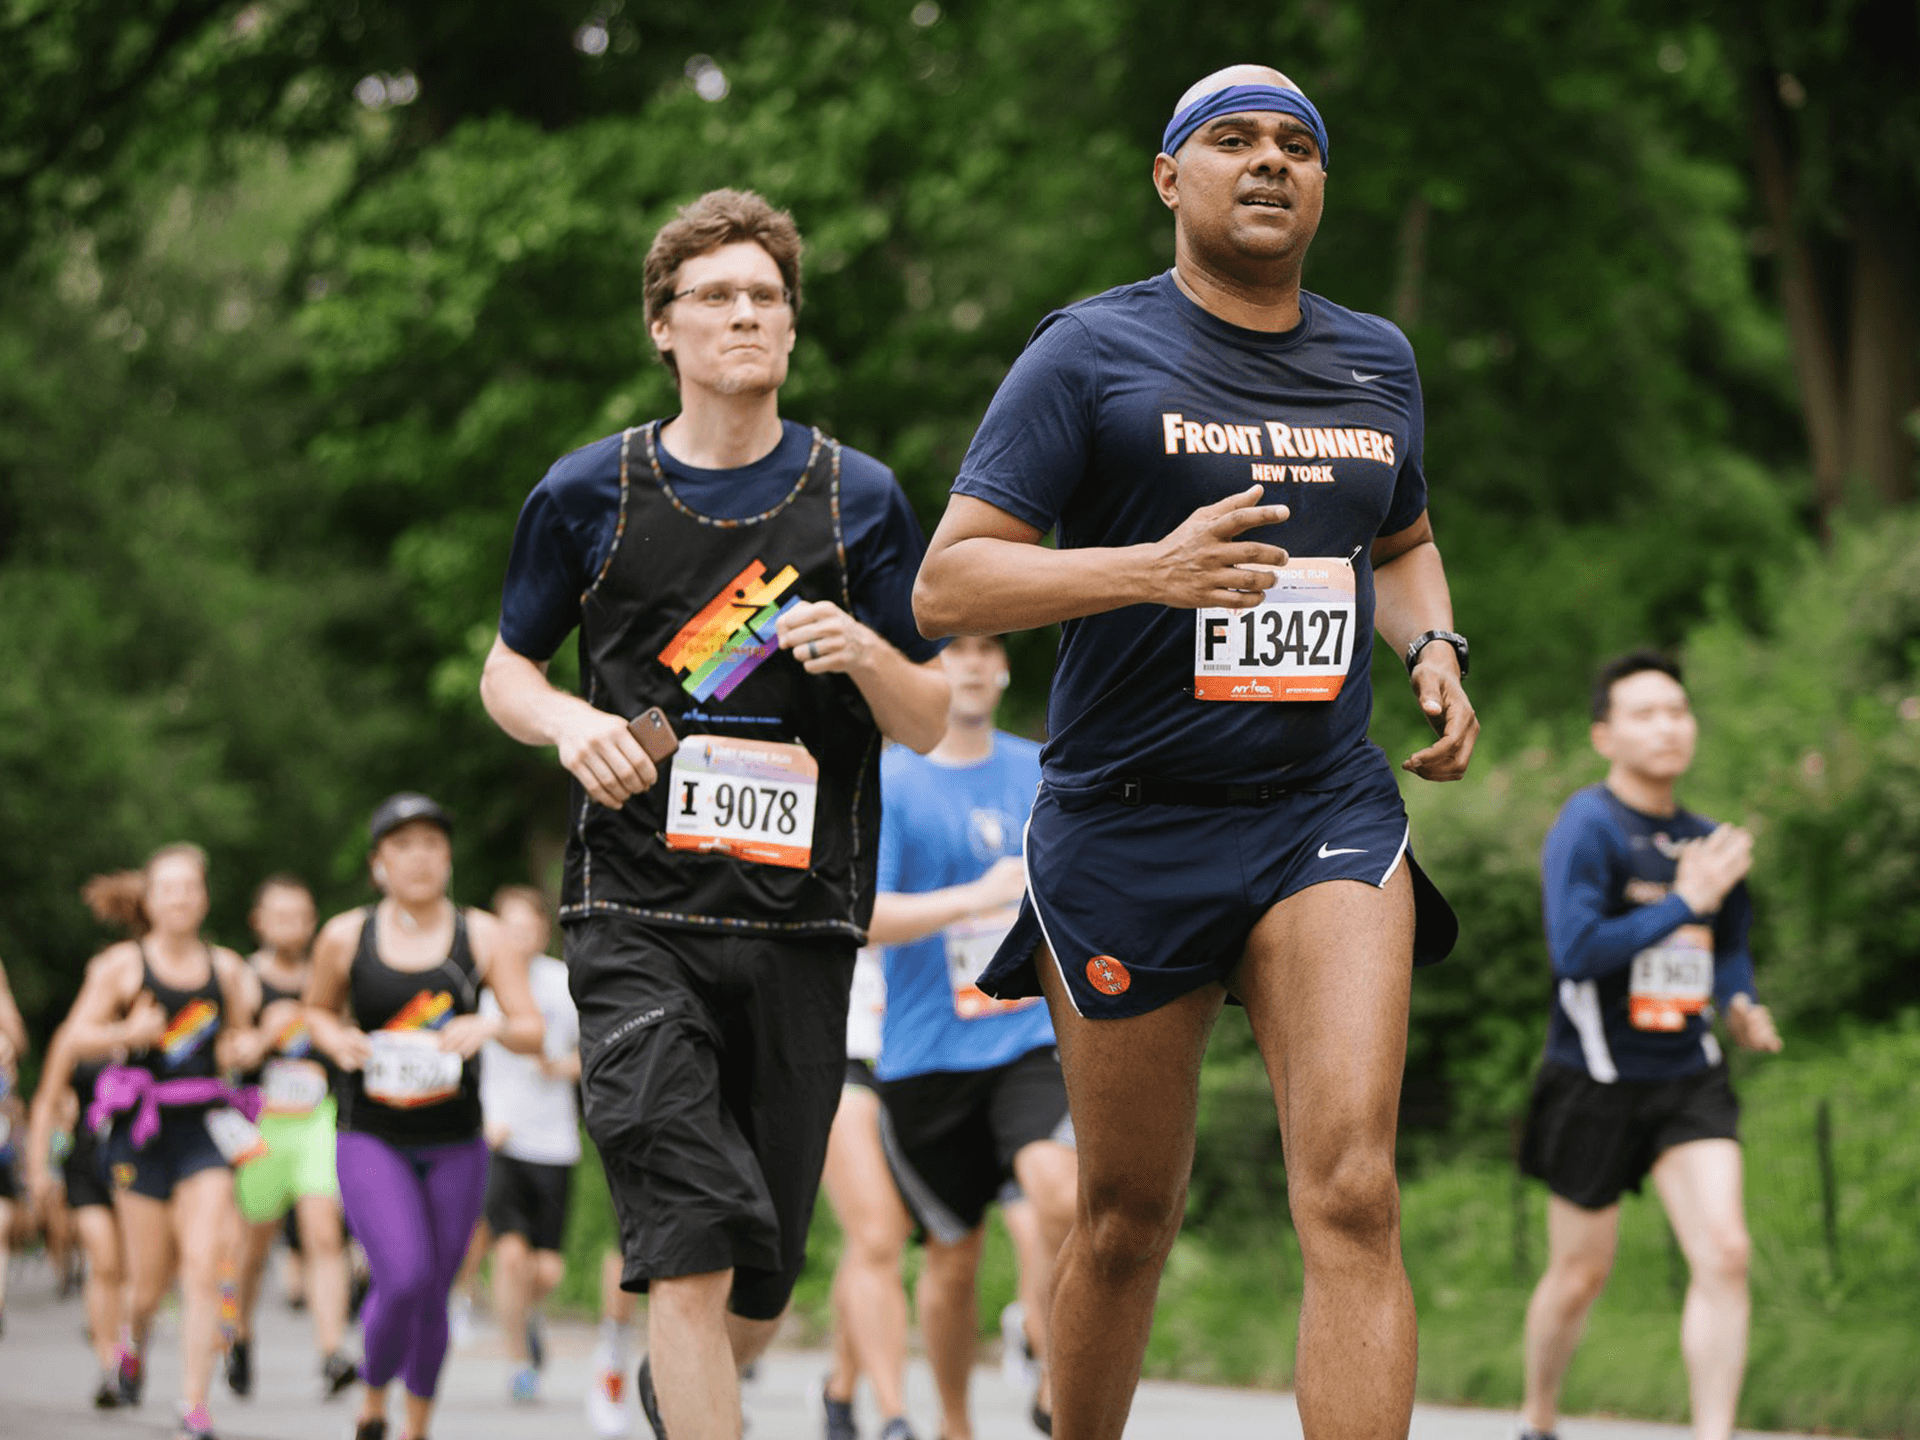 LGBT Pride Run® - Serve as race director (appointed in September each year for next year's race). Serve on the committee to help liaise with NYRR on race logistics, market the race, obtain and support sponsors and donors.